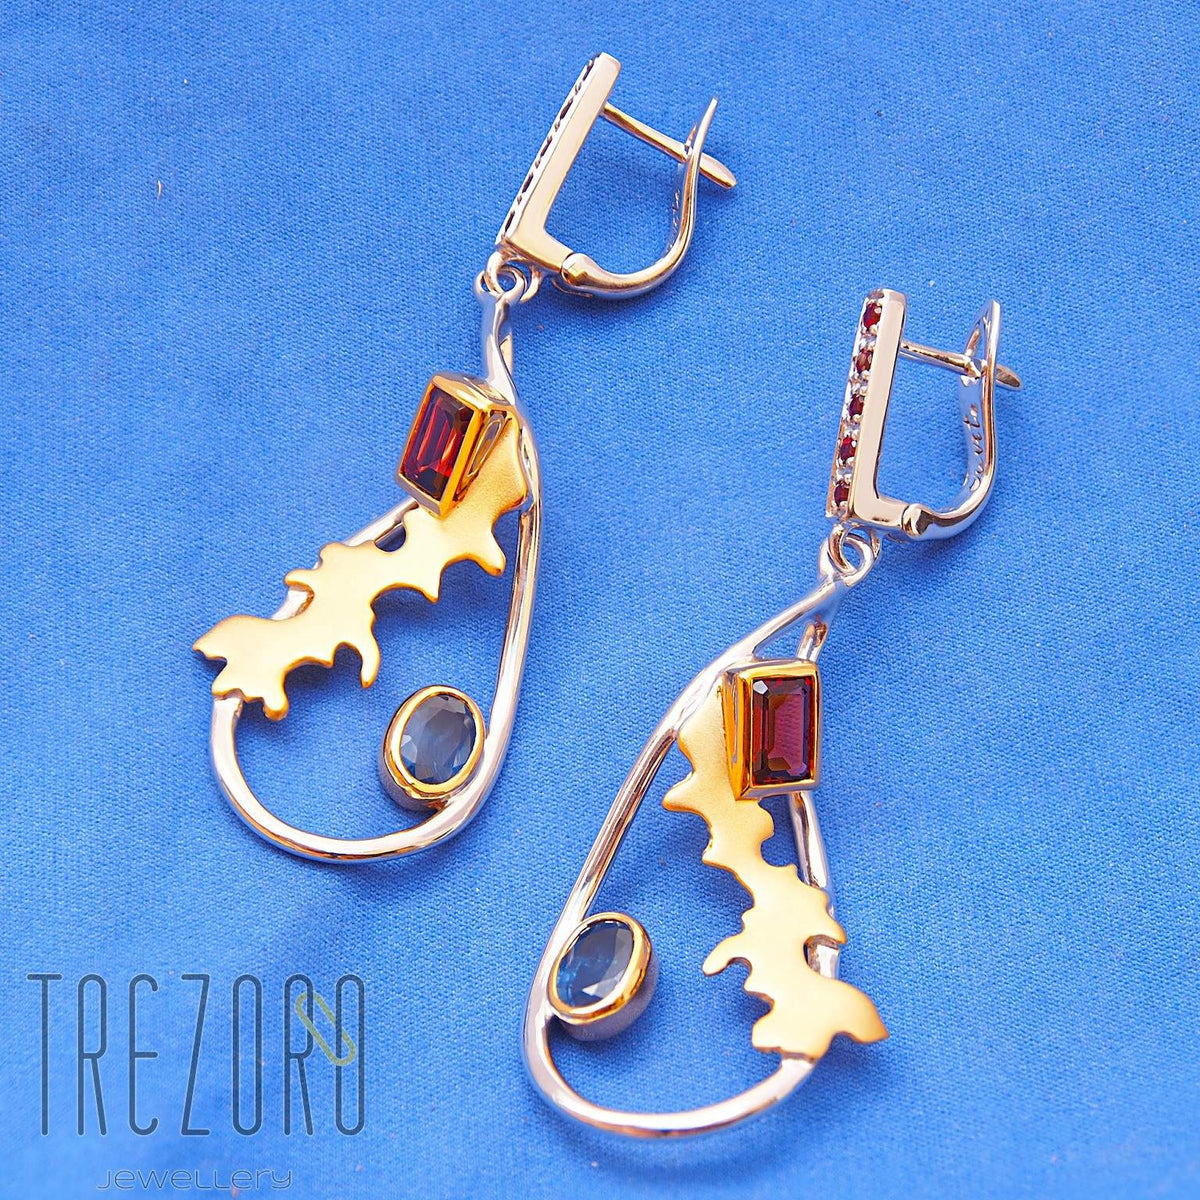 Adventure Road Designer Earrings. Sterling Silver with Garne,t Sapphire. Rhodium and Gold Plated. On blue.